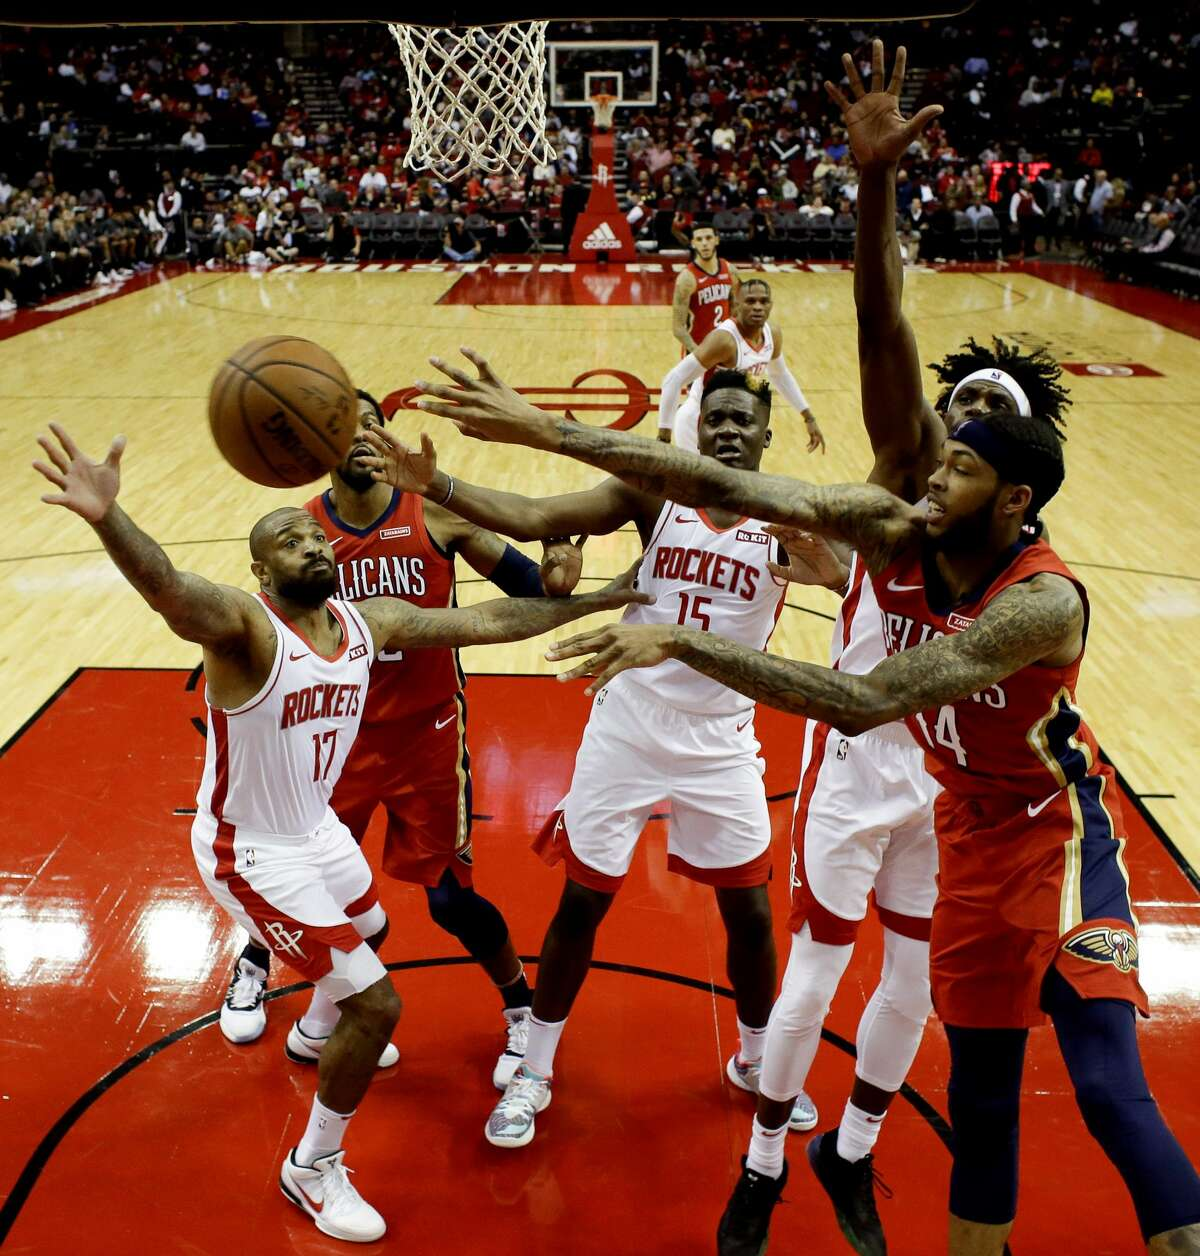 New Orleans Pelicans forward Brandon Ingram, right, passes the ball during the second half of an NBA basketball game against the Houston Rockets, Saturday, Oct. 26, 2019, in Houston. (AP Photo/Eric Christian Smith)